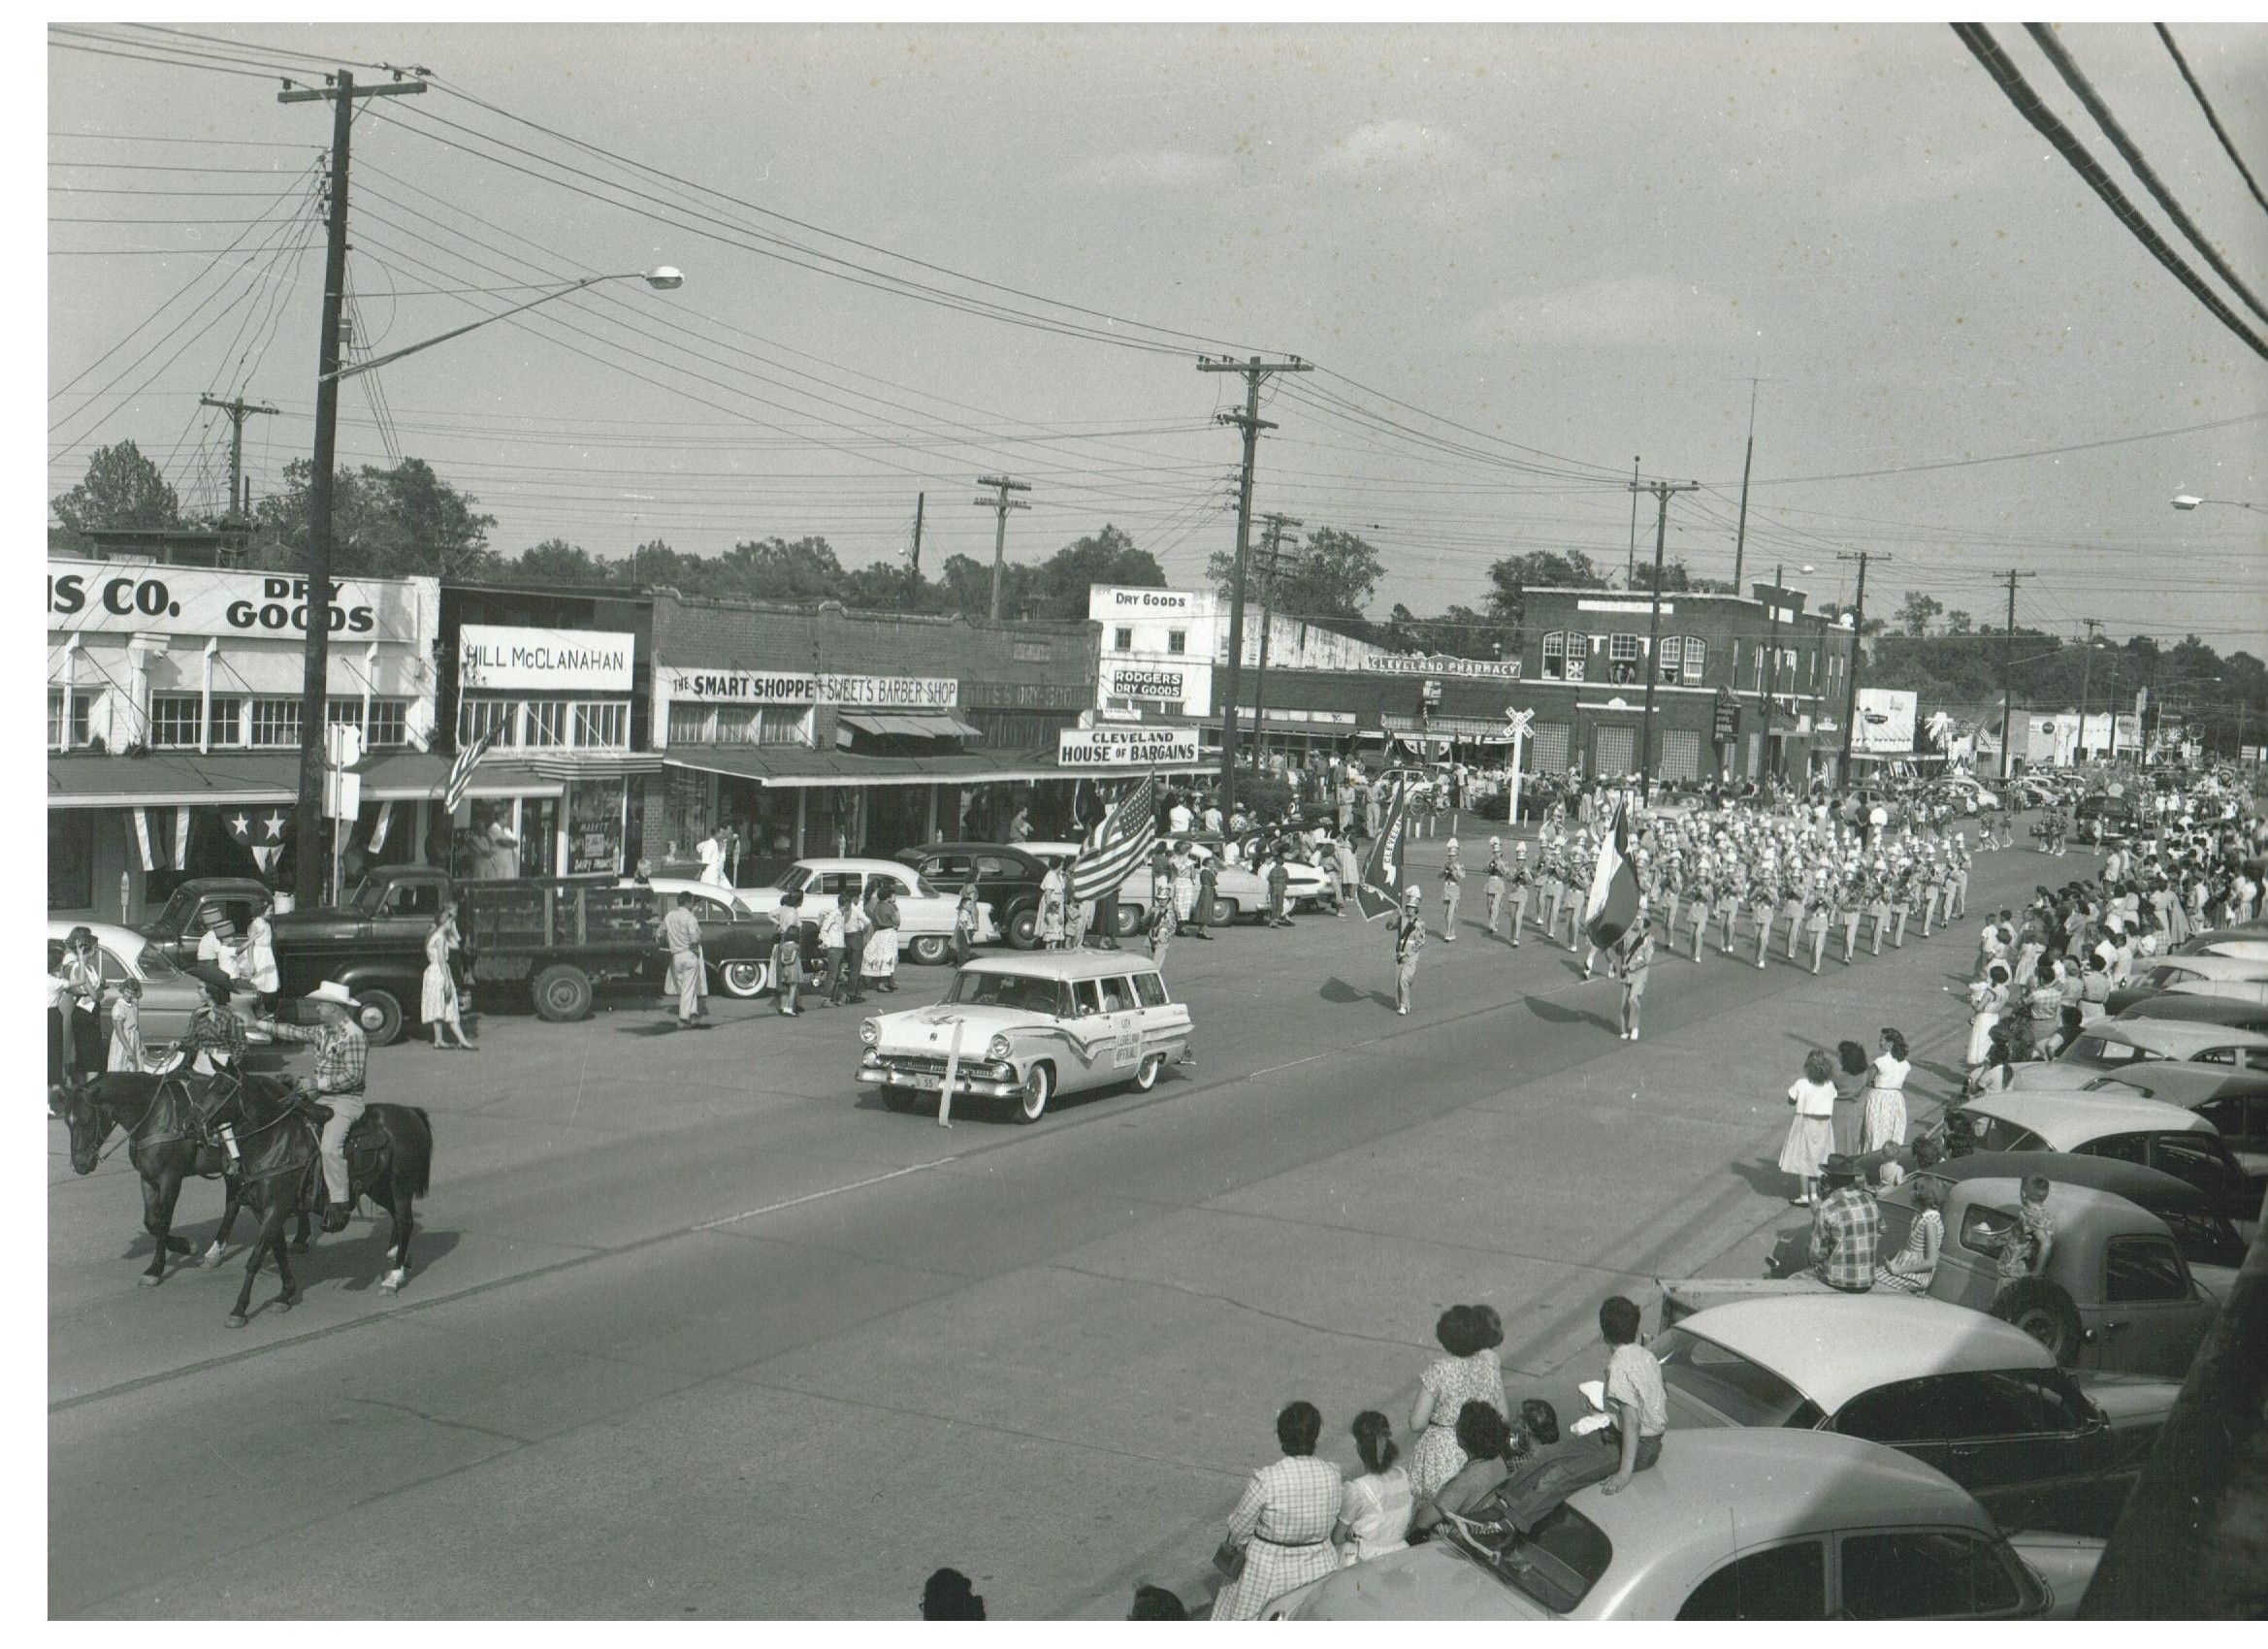 Cars in Parade